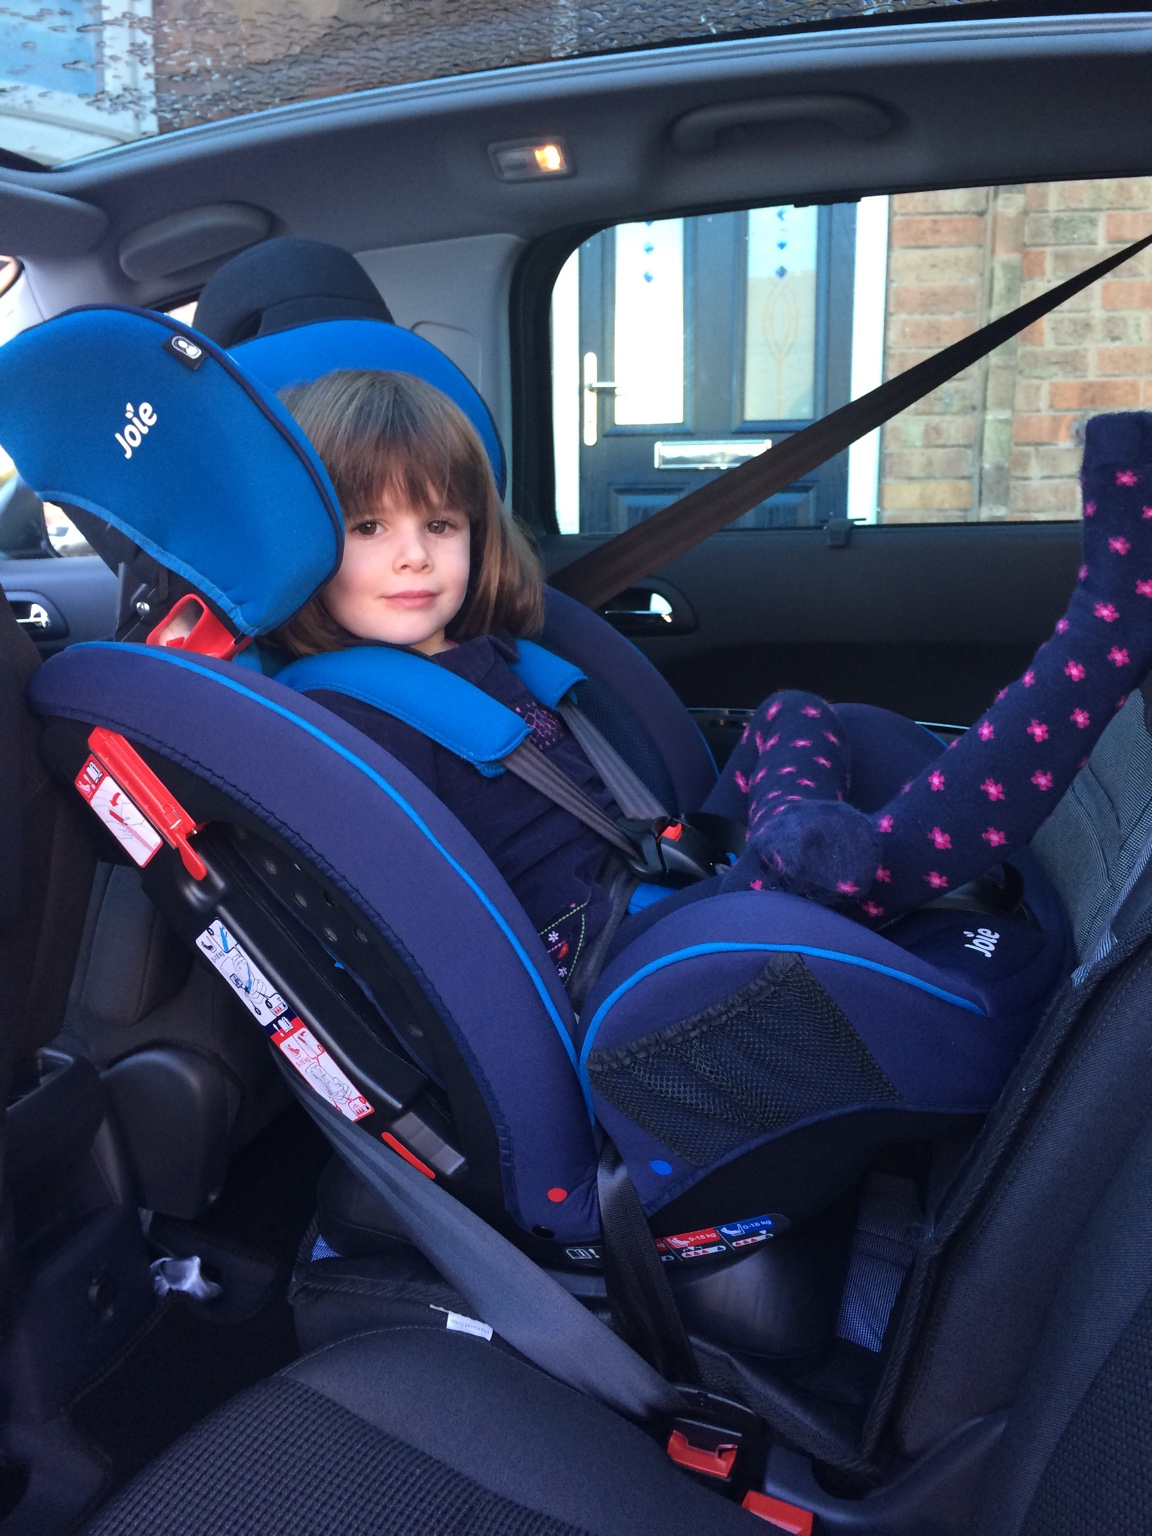 Rear Facing Car Seat For 3 Year Old